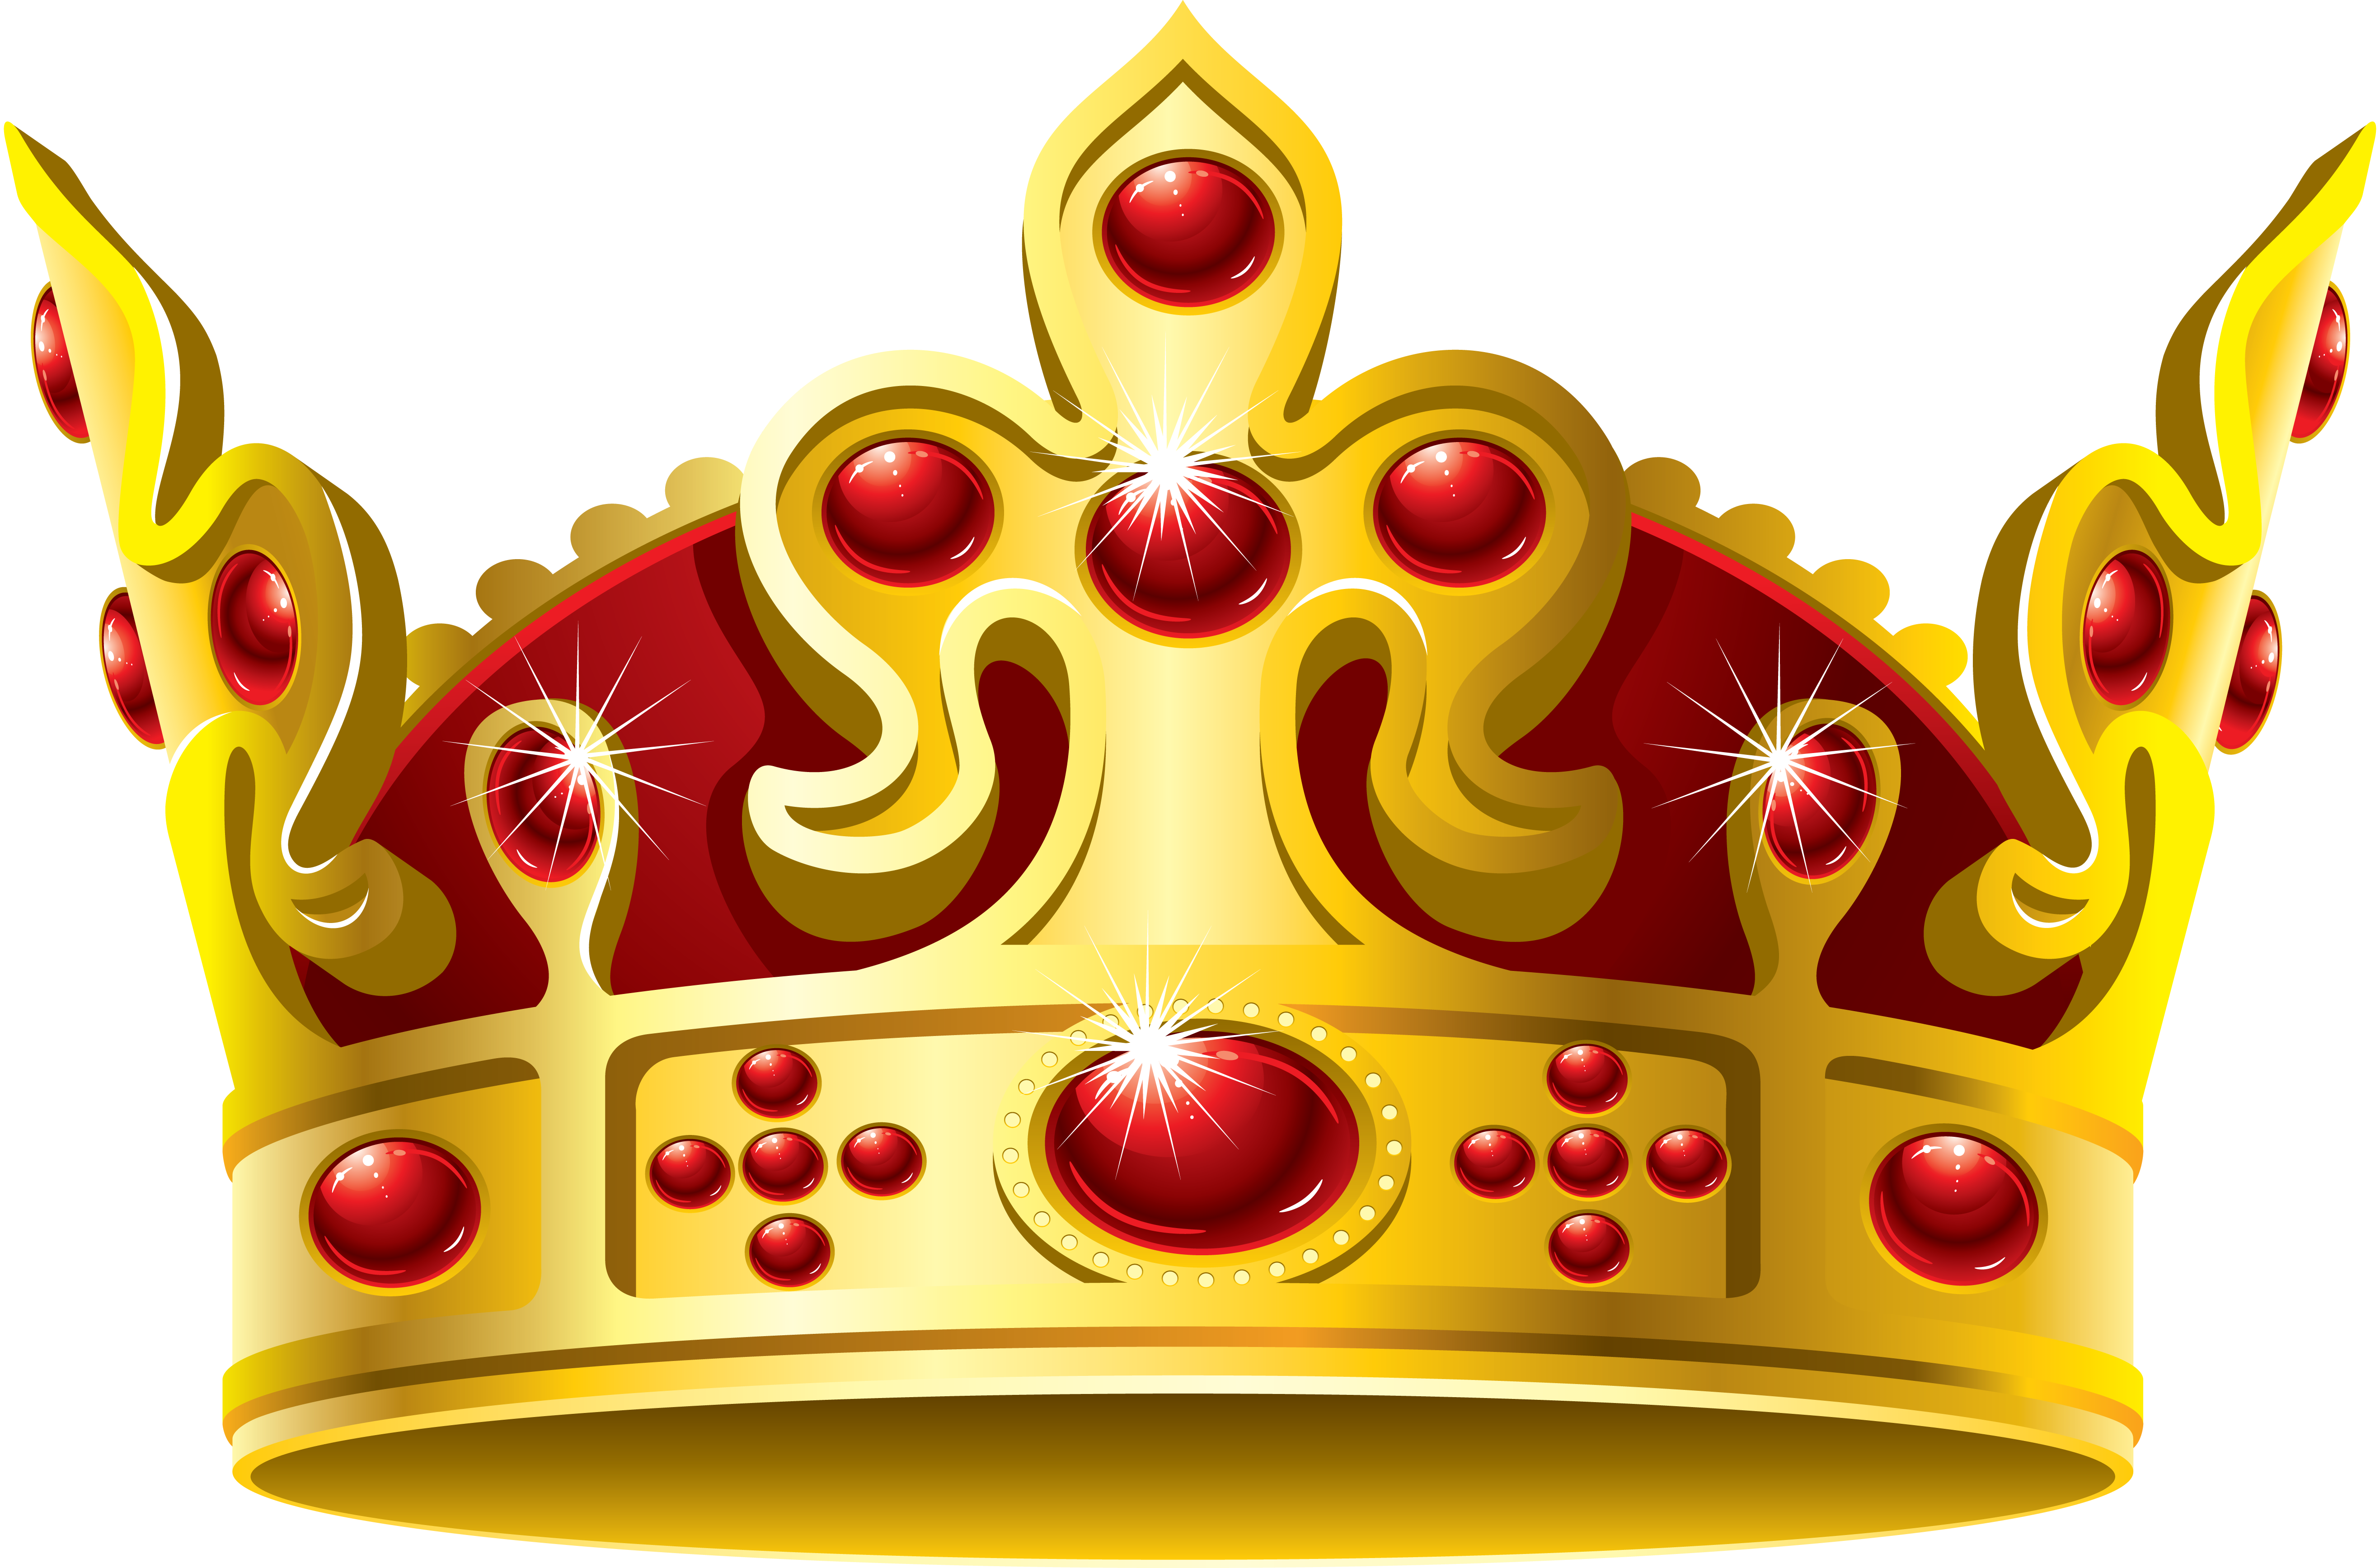 Gold princess crown clipart vector transparent library Gold Crown Red Stone PNG Image - PurePNG | Free transparent CC0 PNG ... vector transparent library